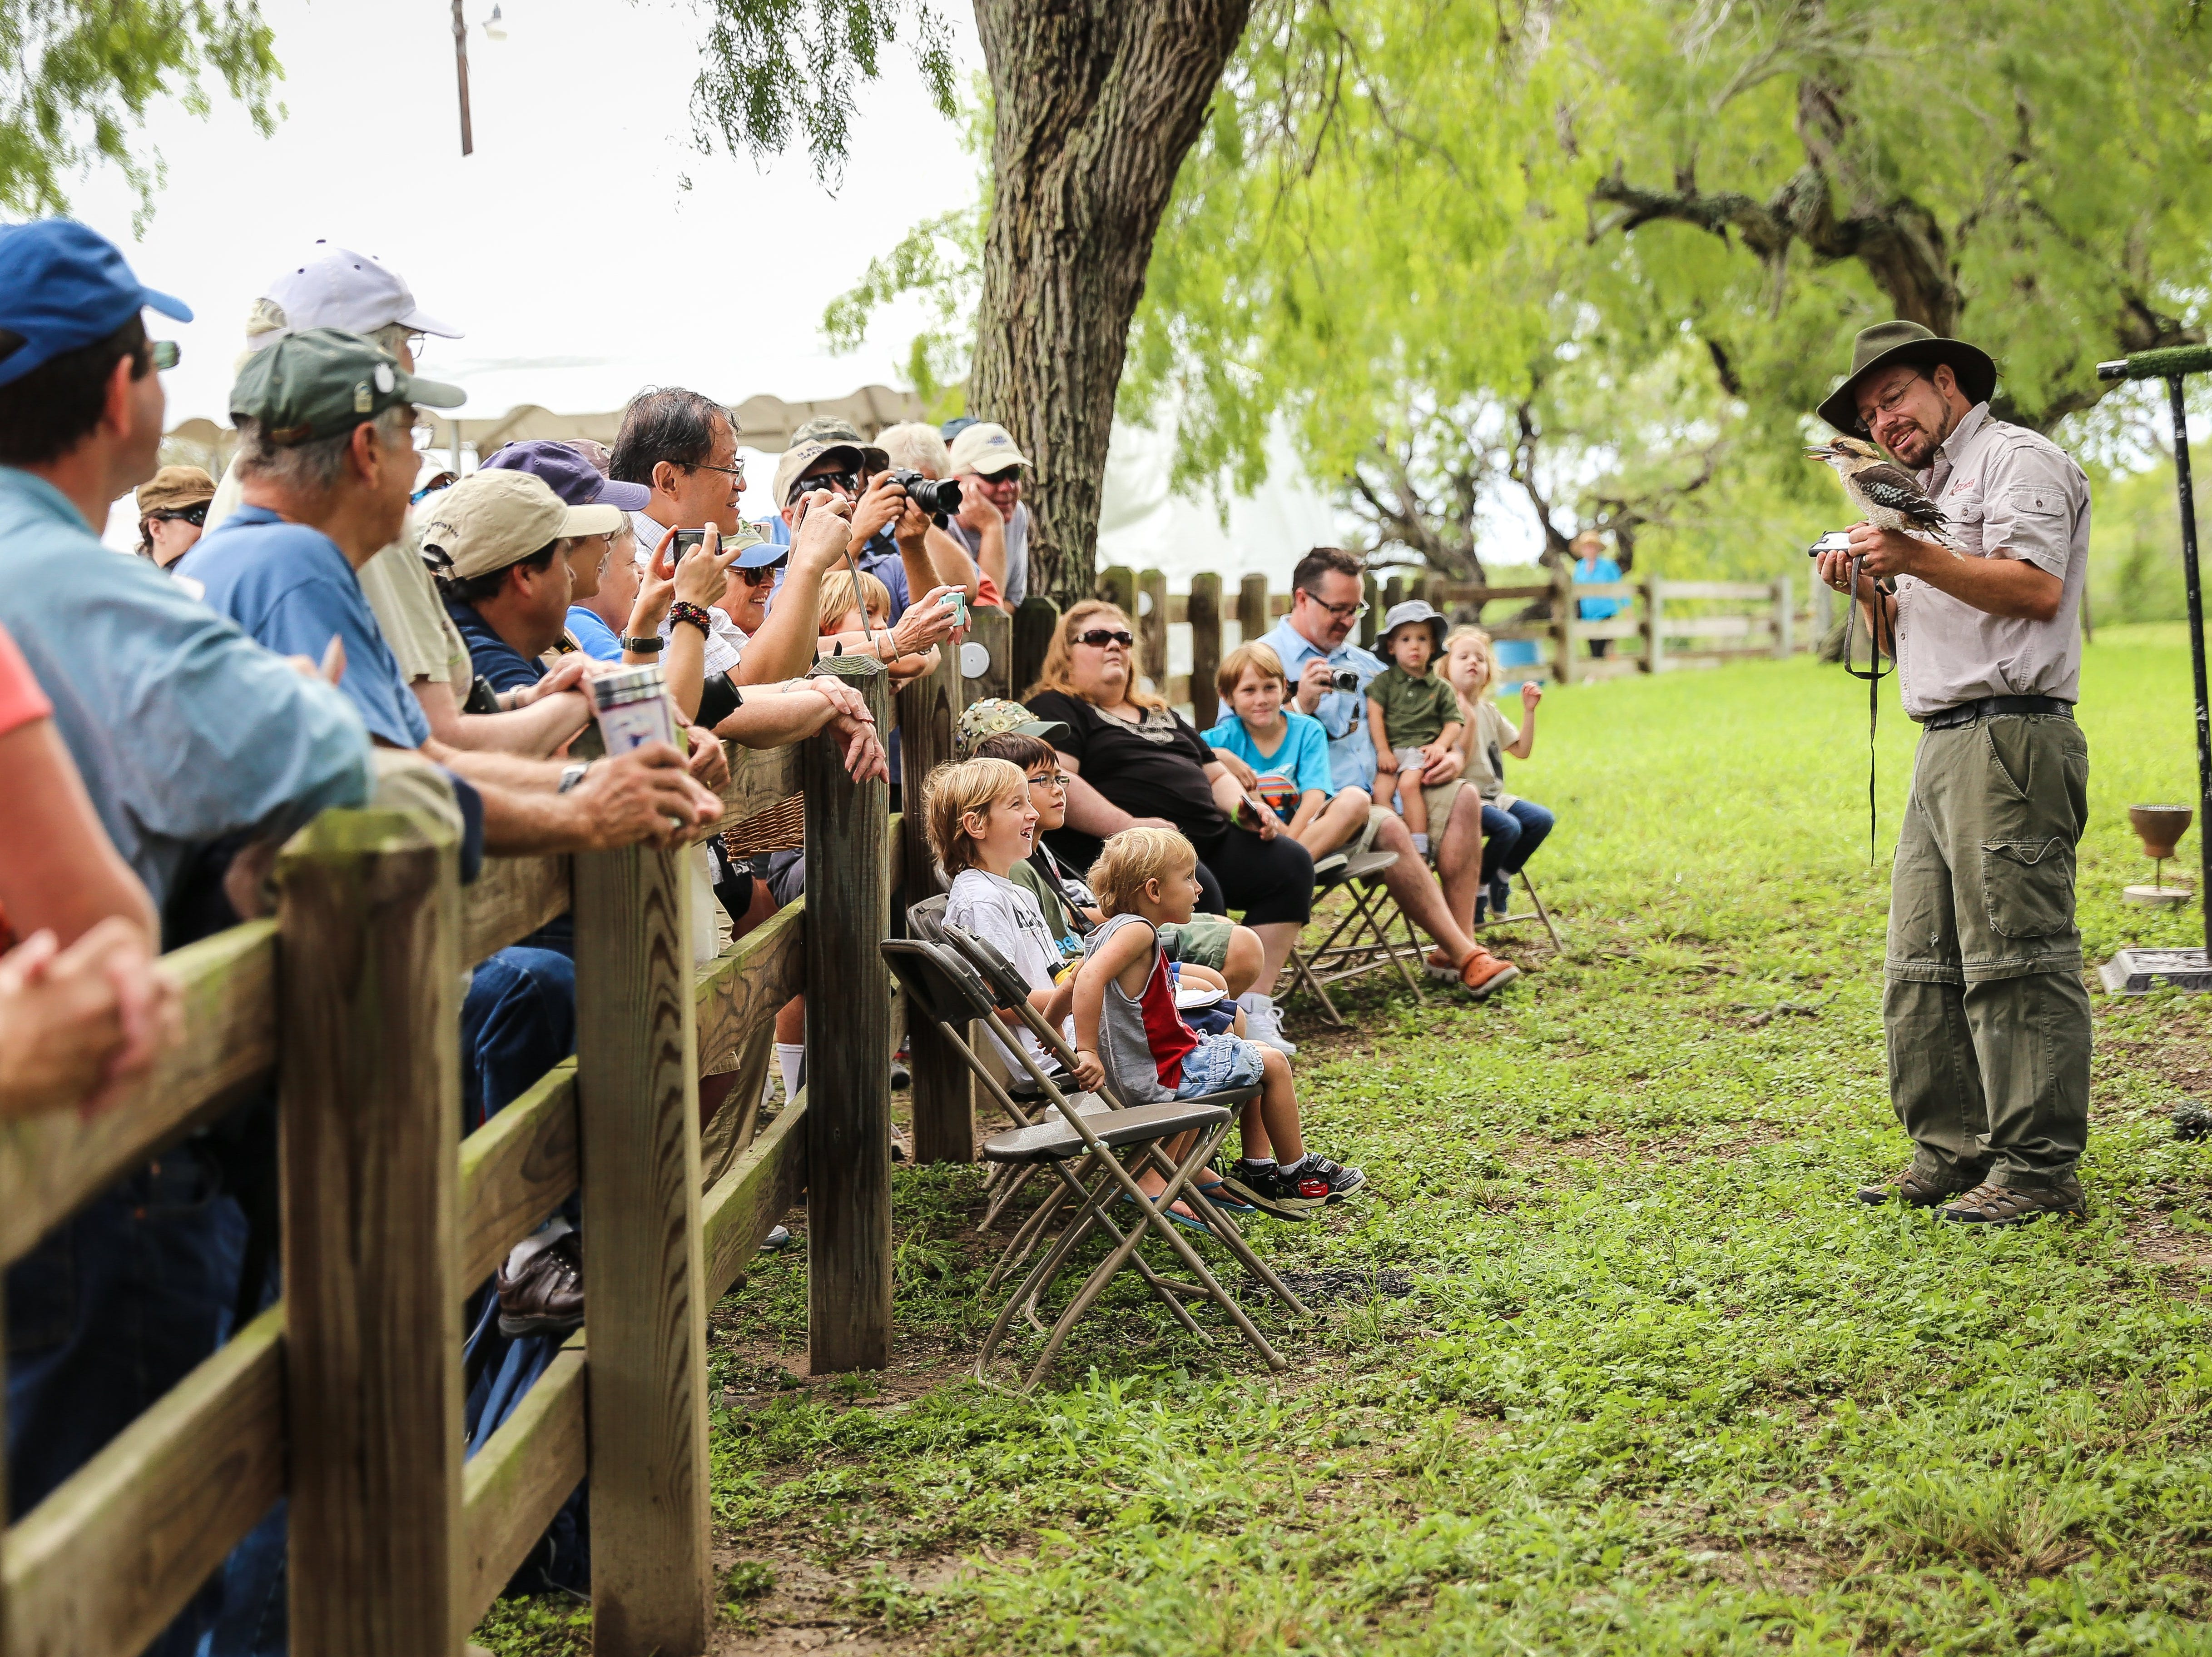 Kevin Gaines is an annual favorite with his Wildlife Revealed program at the Celebration of Flight event at Hazel Bazemore Park Sept. 28-30